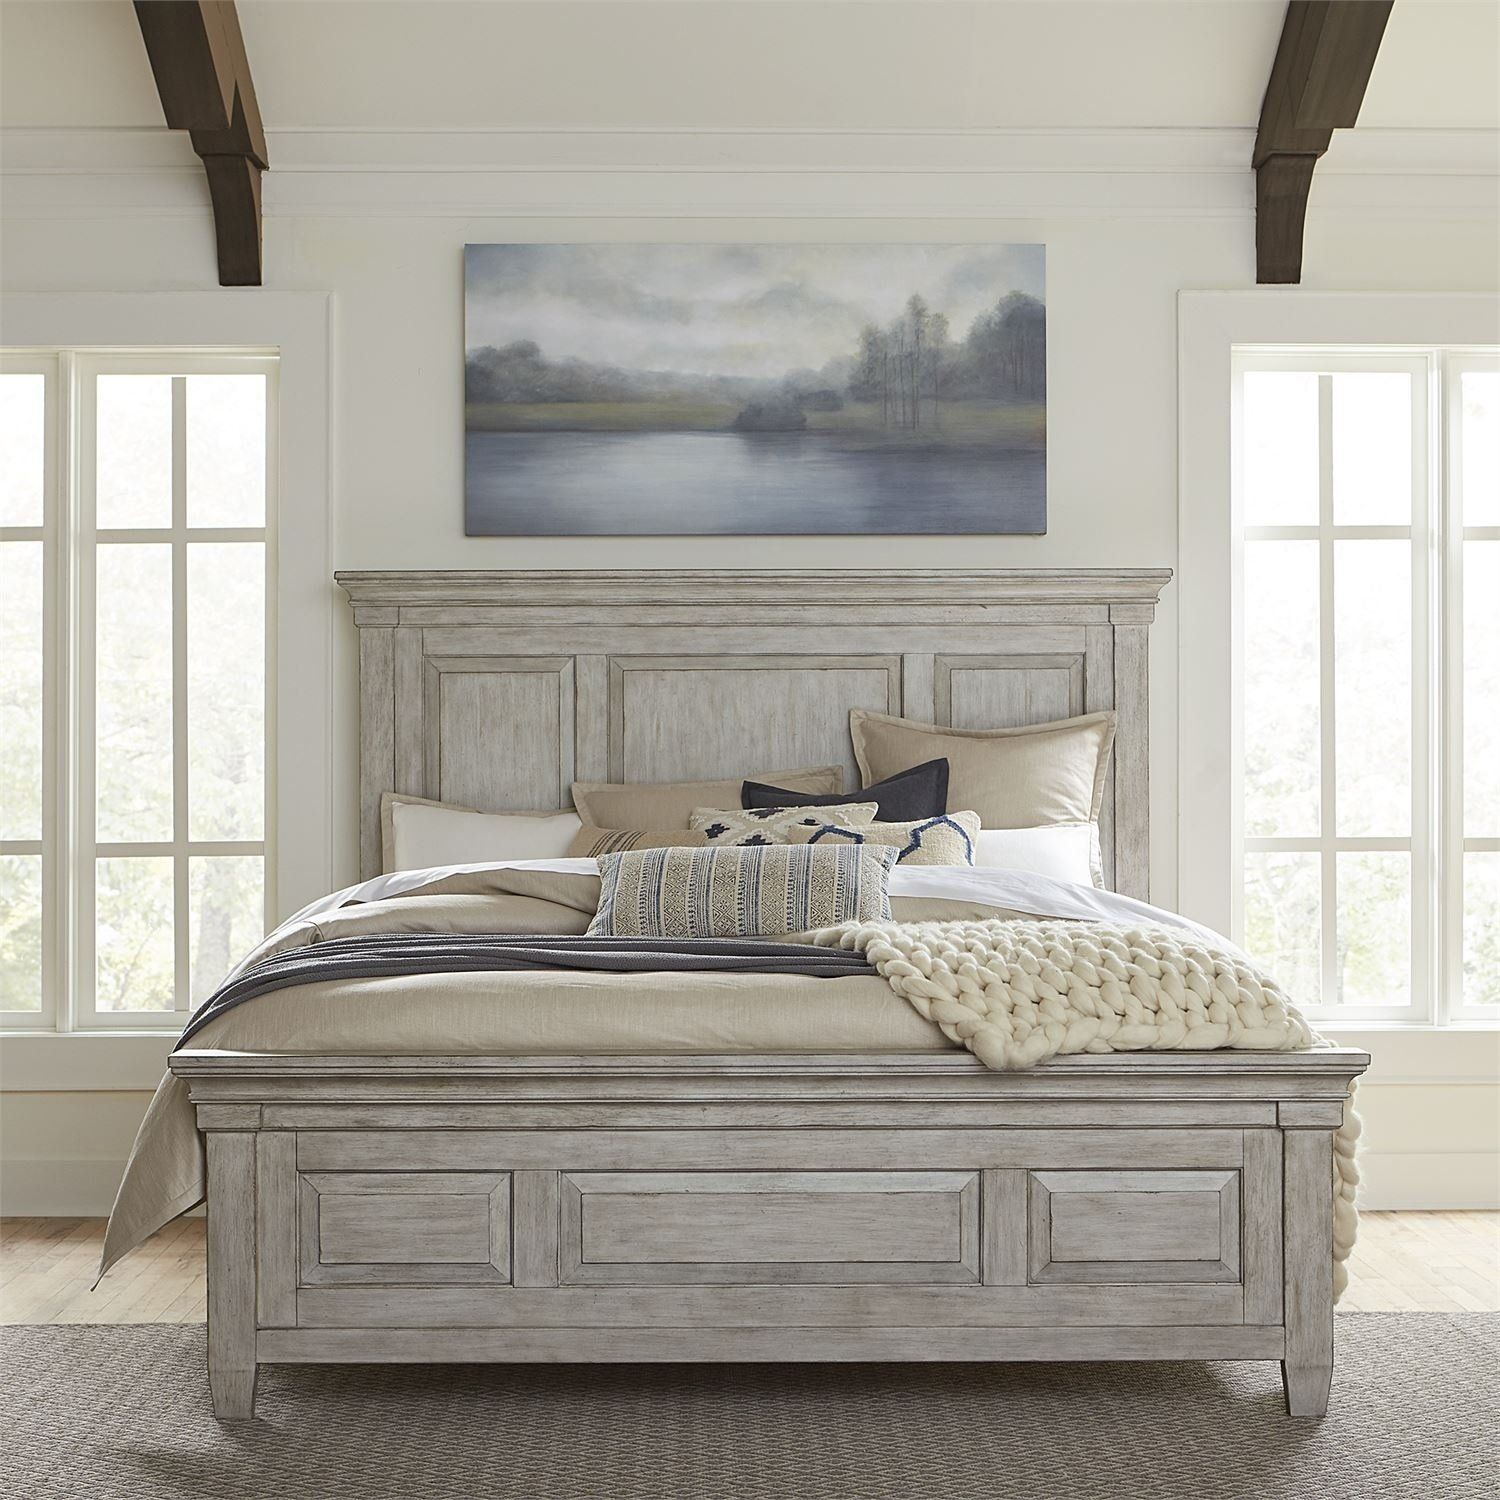 Pin By Delsy E On Bed Frame Ideas In 2020 White King Panel Bed